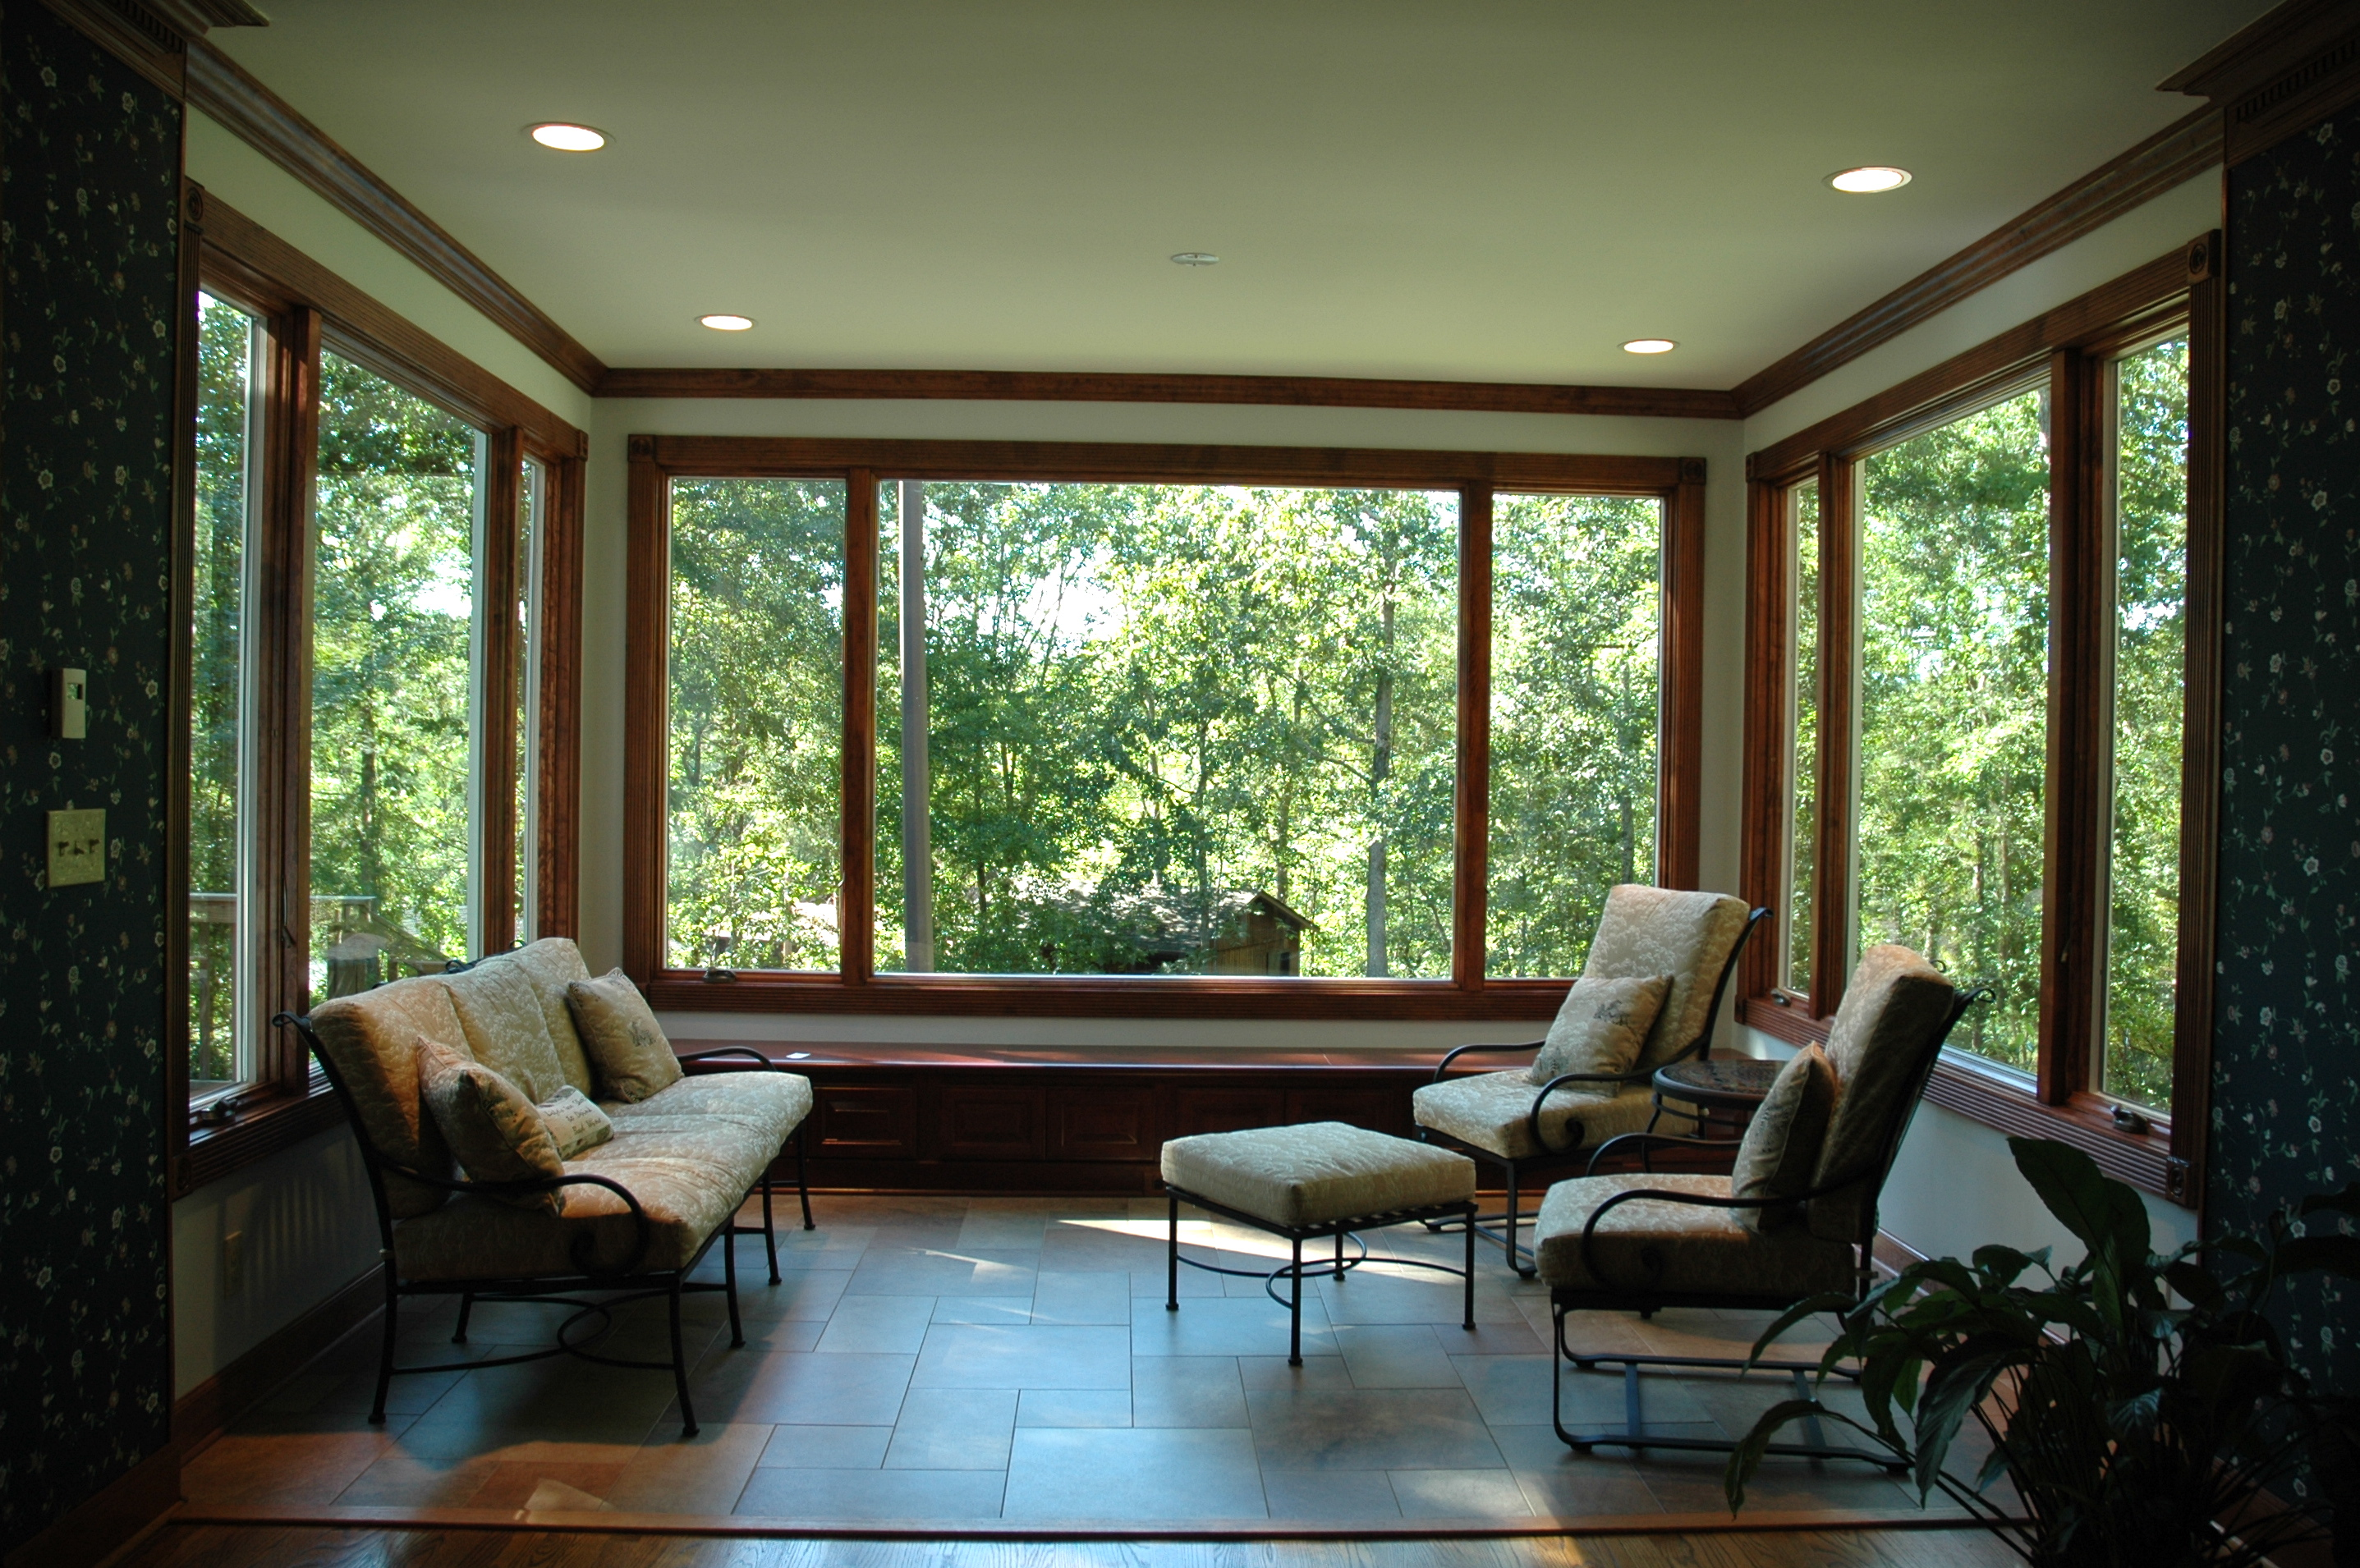 Best energy efficient windows to save electricity energy for Sun room